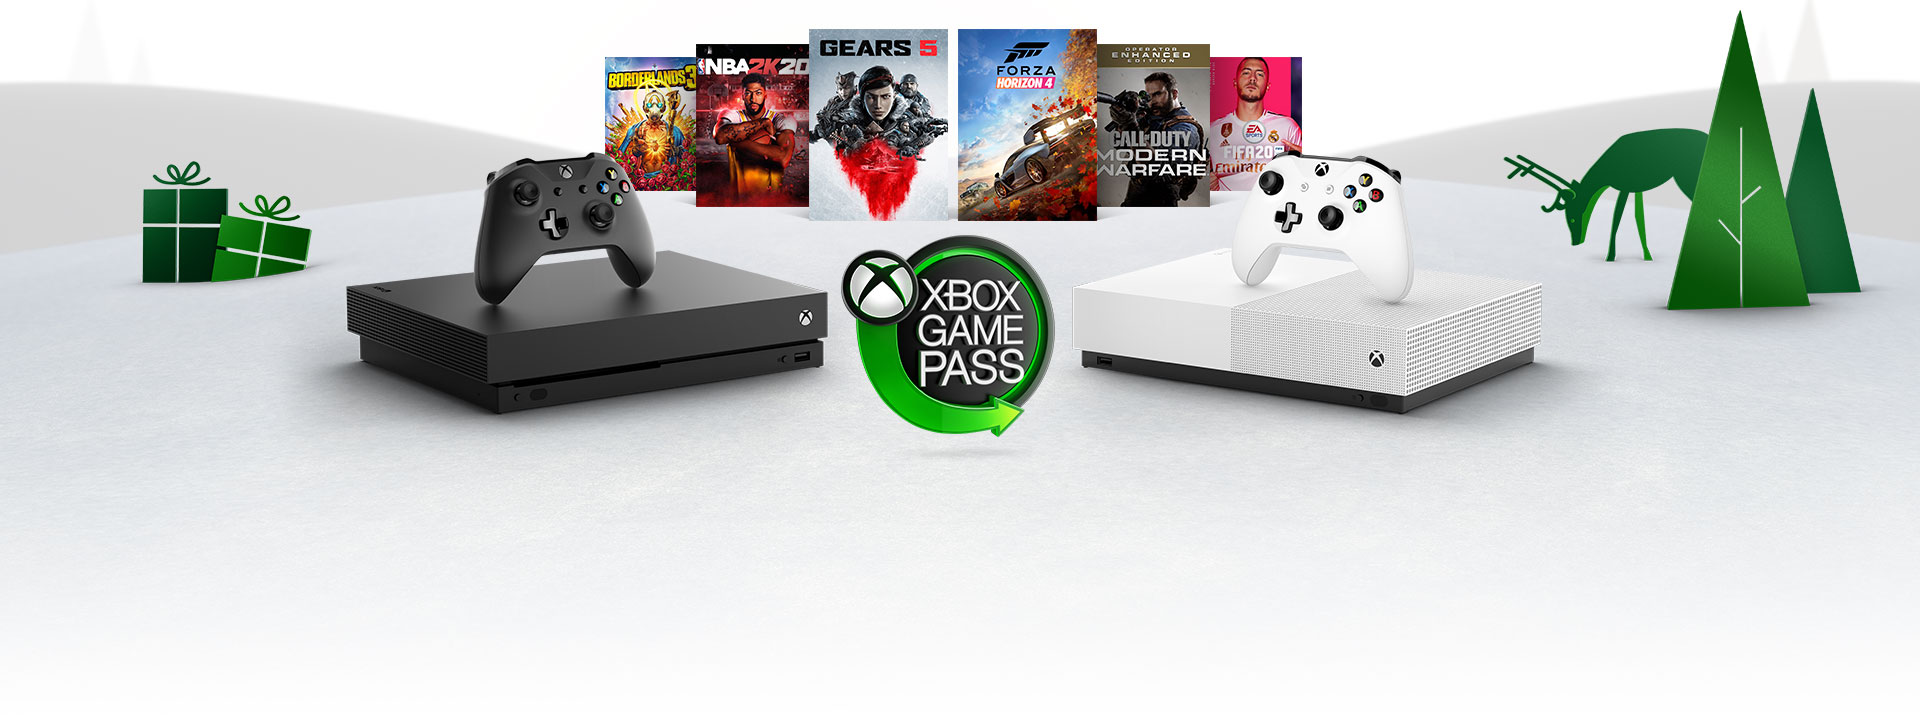 Xbox consoles, hot new games, and the Xbox Game Pass logo on snowy hills with trees and woodland creatures